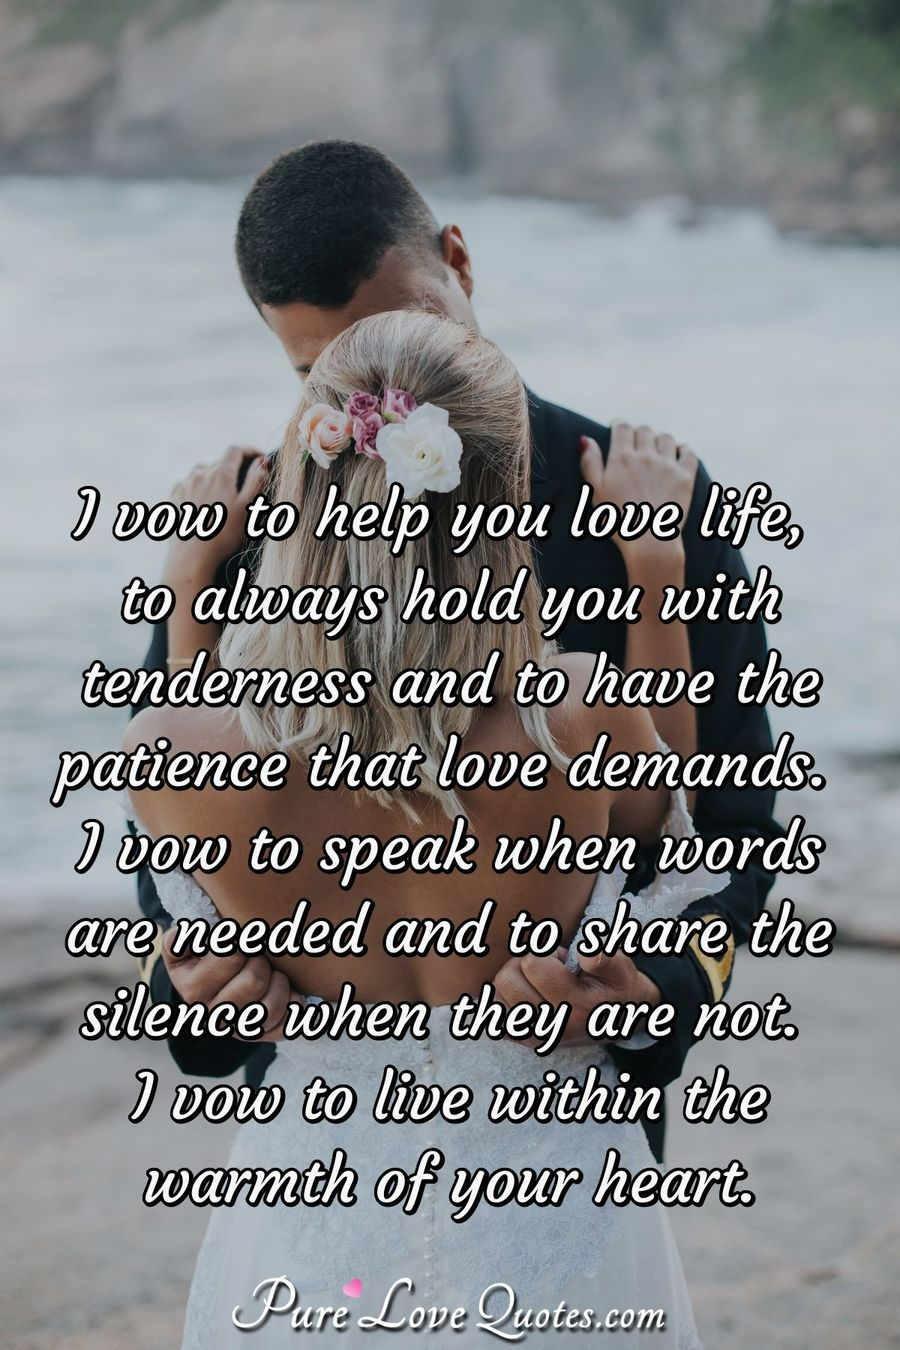 I vow to help you love life, to always hold you with tenderness and to have the patience that love demands. I vow to speak when words are needed and to share the silence when they are not.  I vow to live within the warmth of your heart. - Anonymous